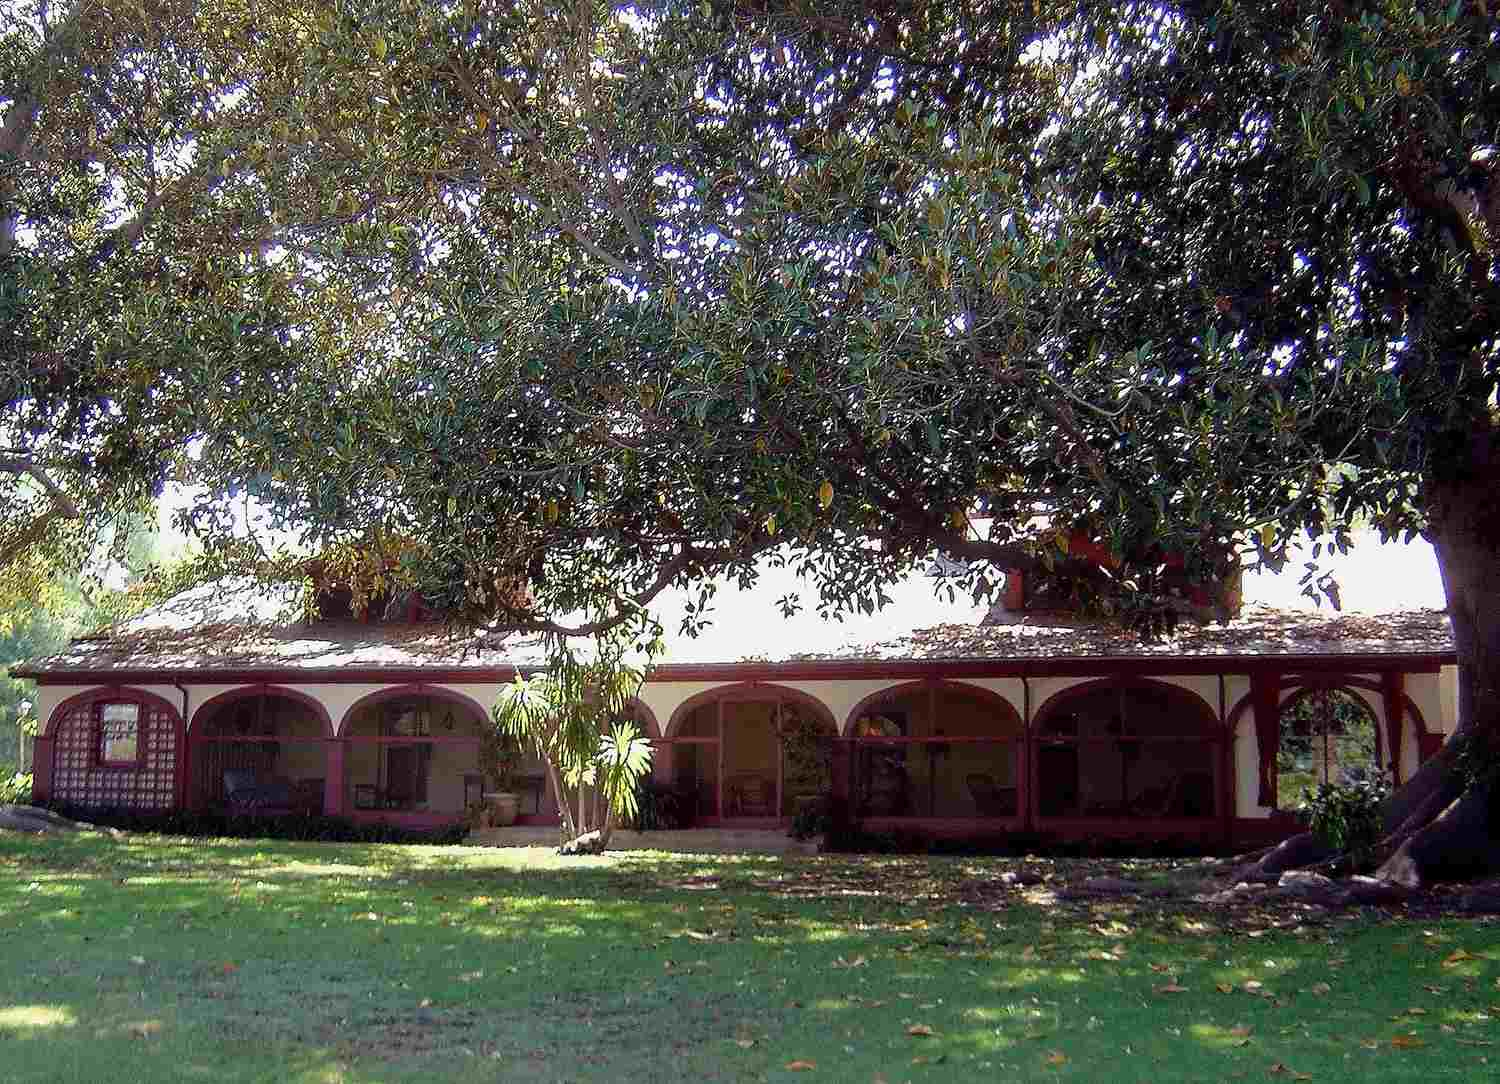 The exterior of the adobe house at Rancho Los Alamitos historic house museum, gardens, and park, in Long Beach